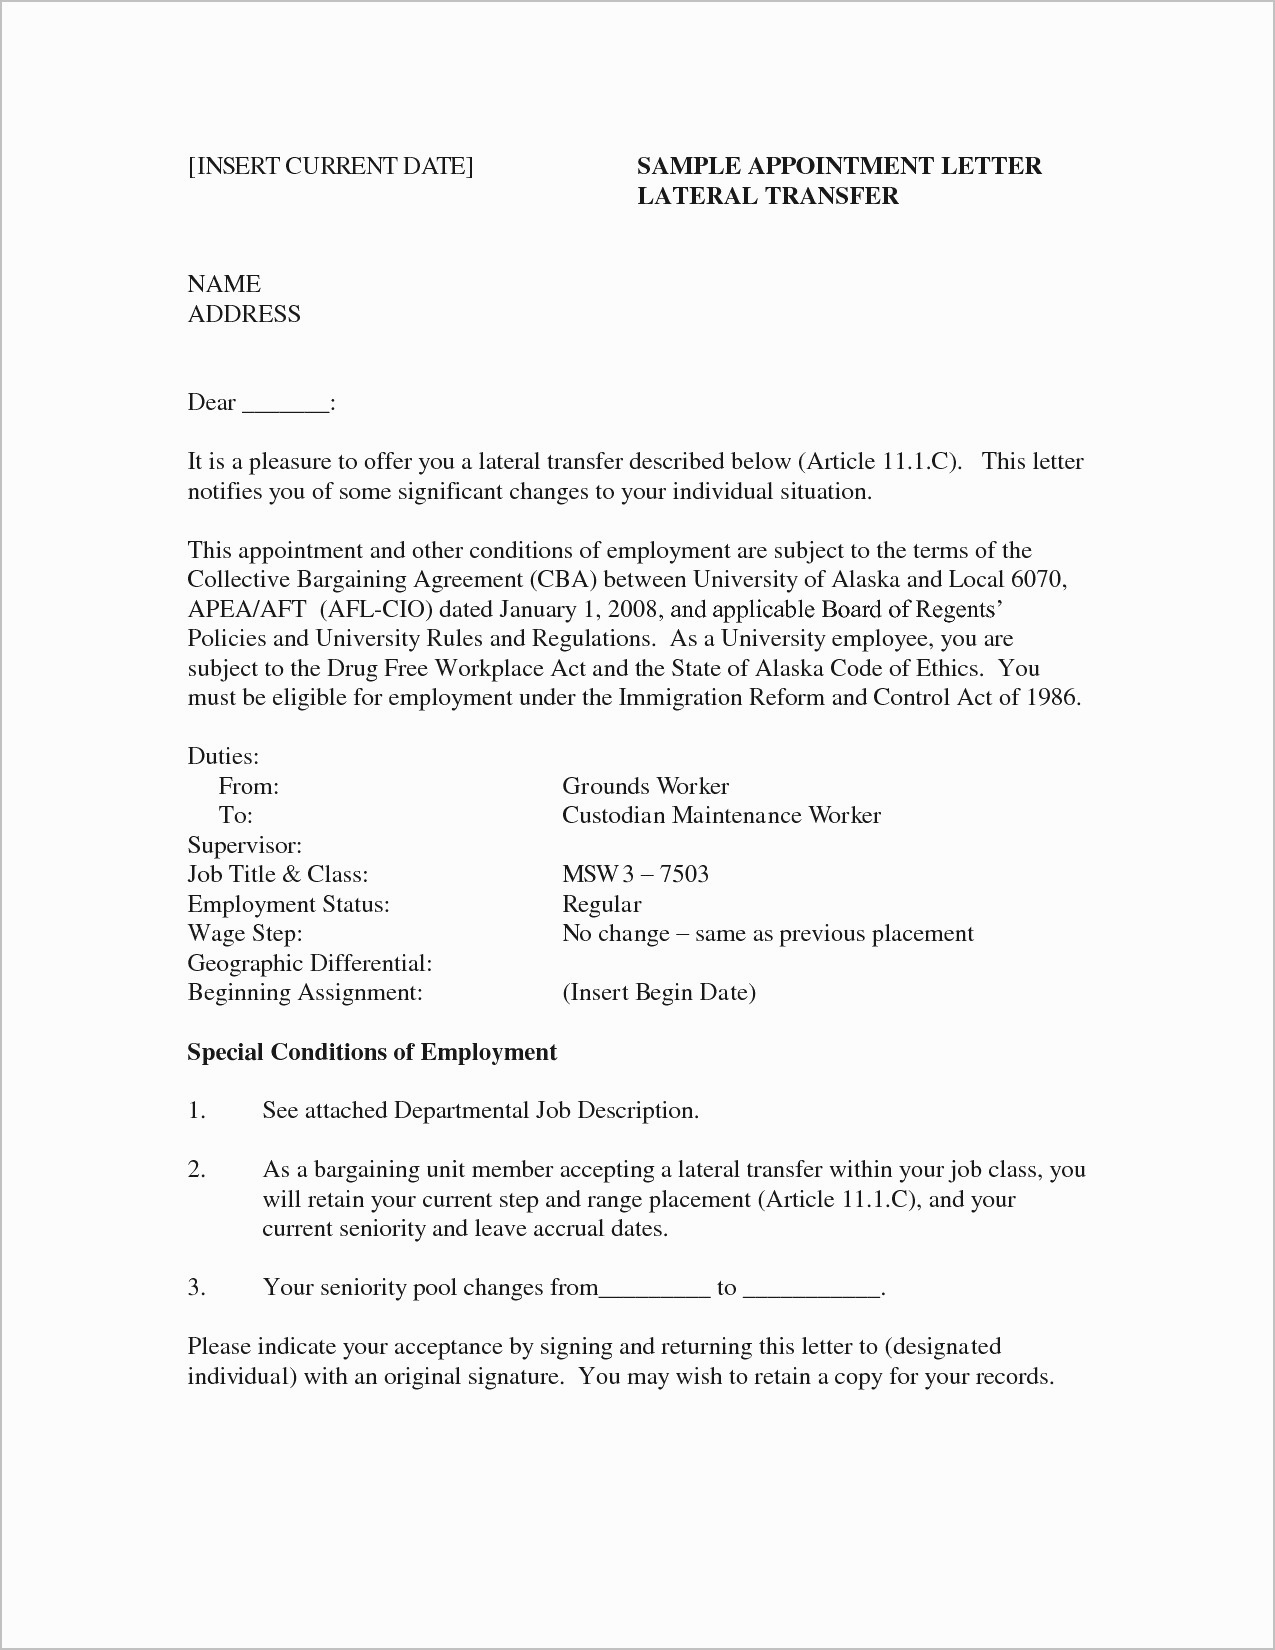 sample child support letter template example-Sample Child Support Letter Template New Job Fer Letter Template Us Copy Od Consultant Cover Letter 18-h